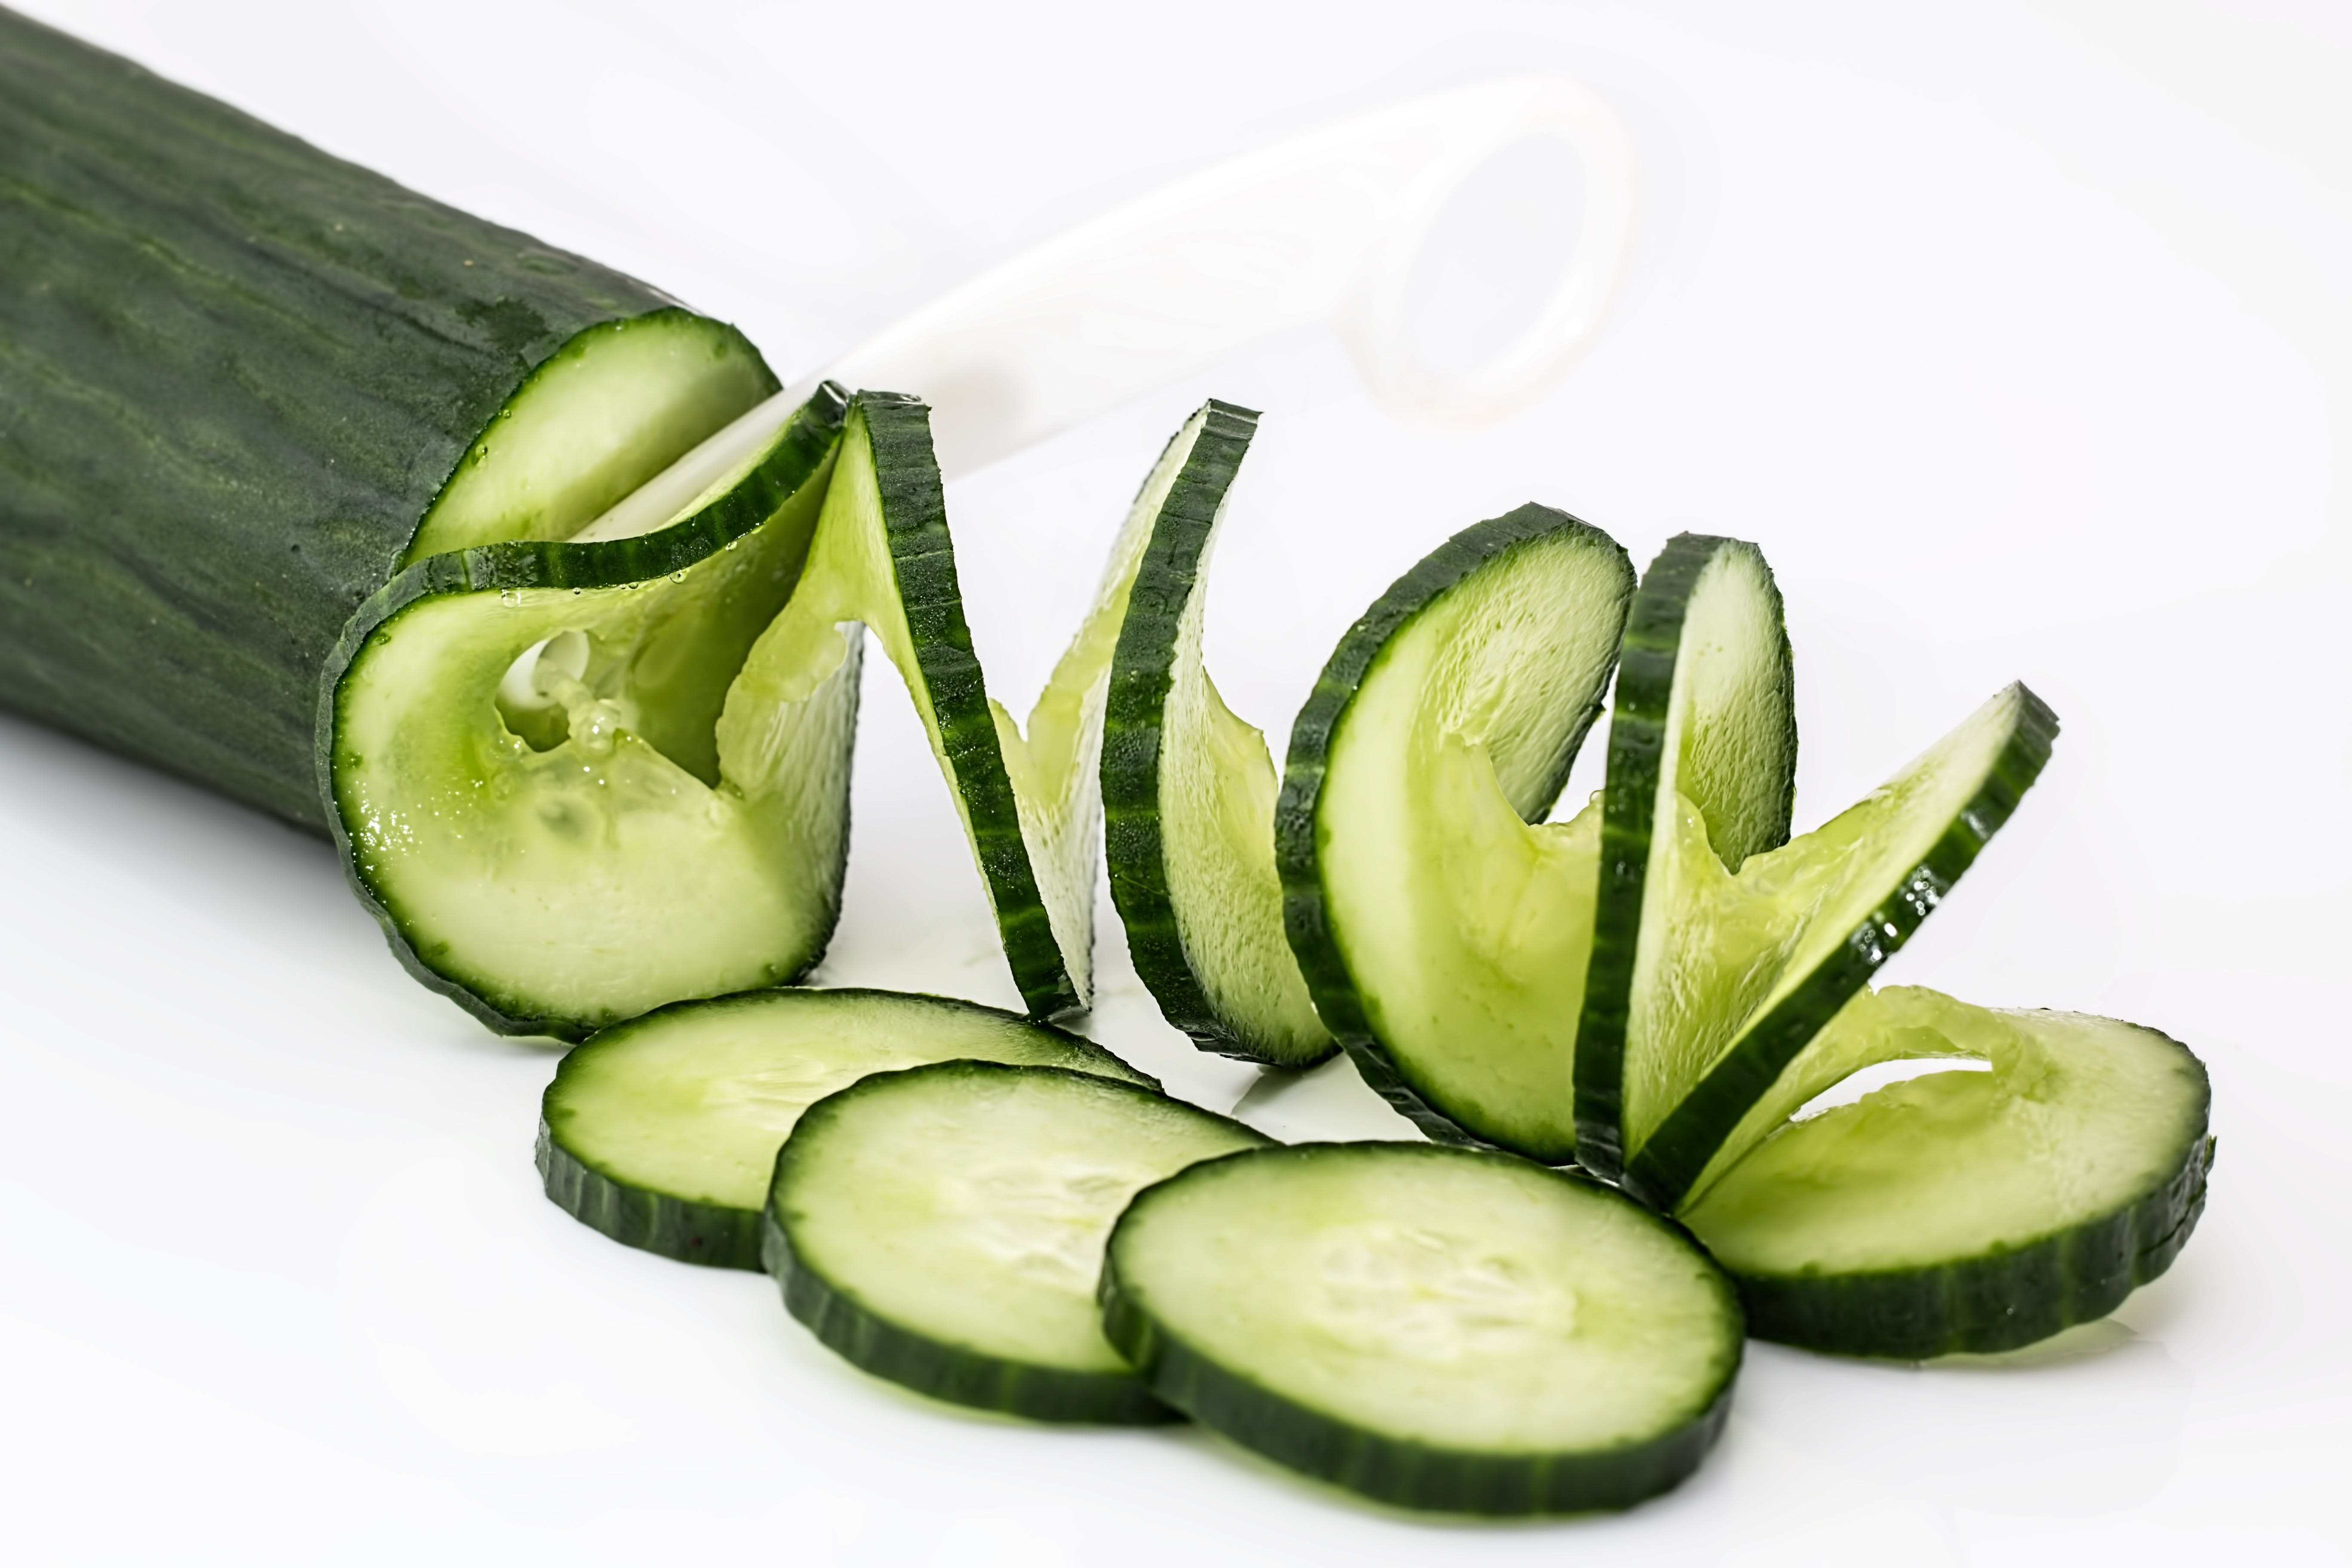 Sliced Cucumber on White Table